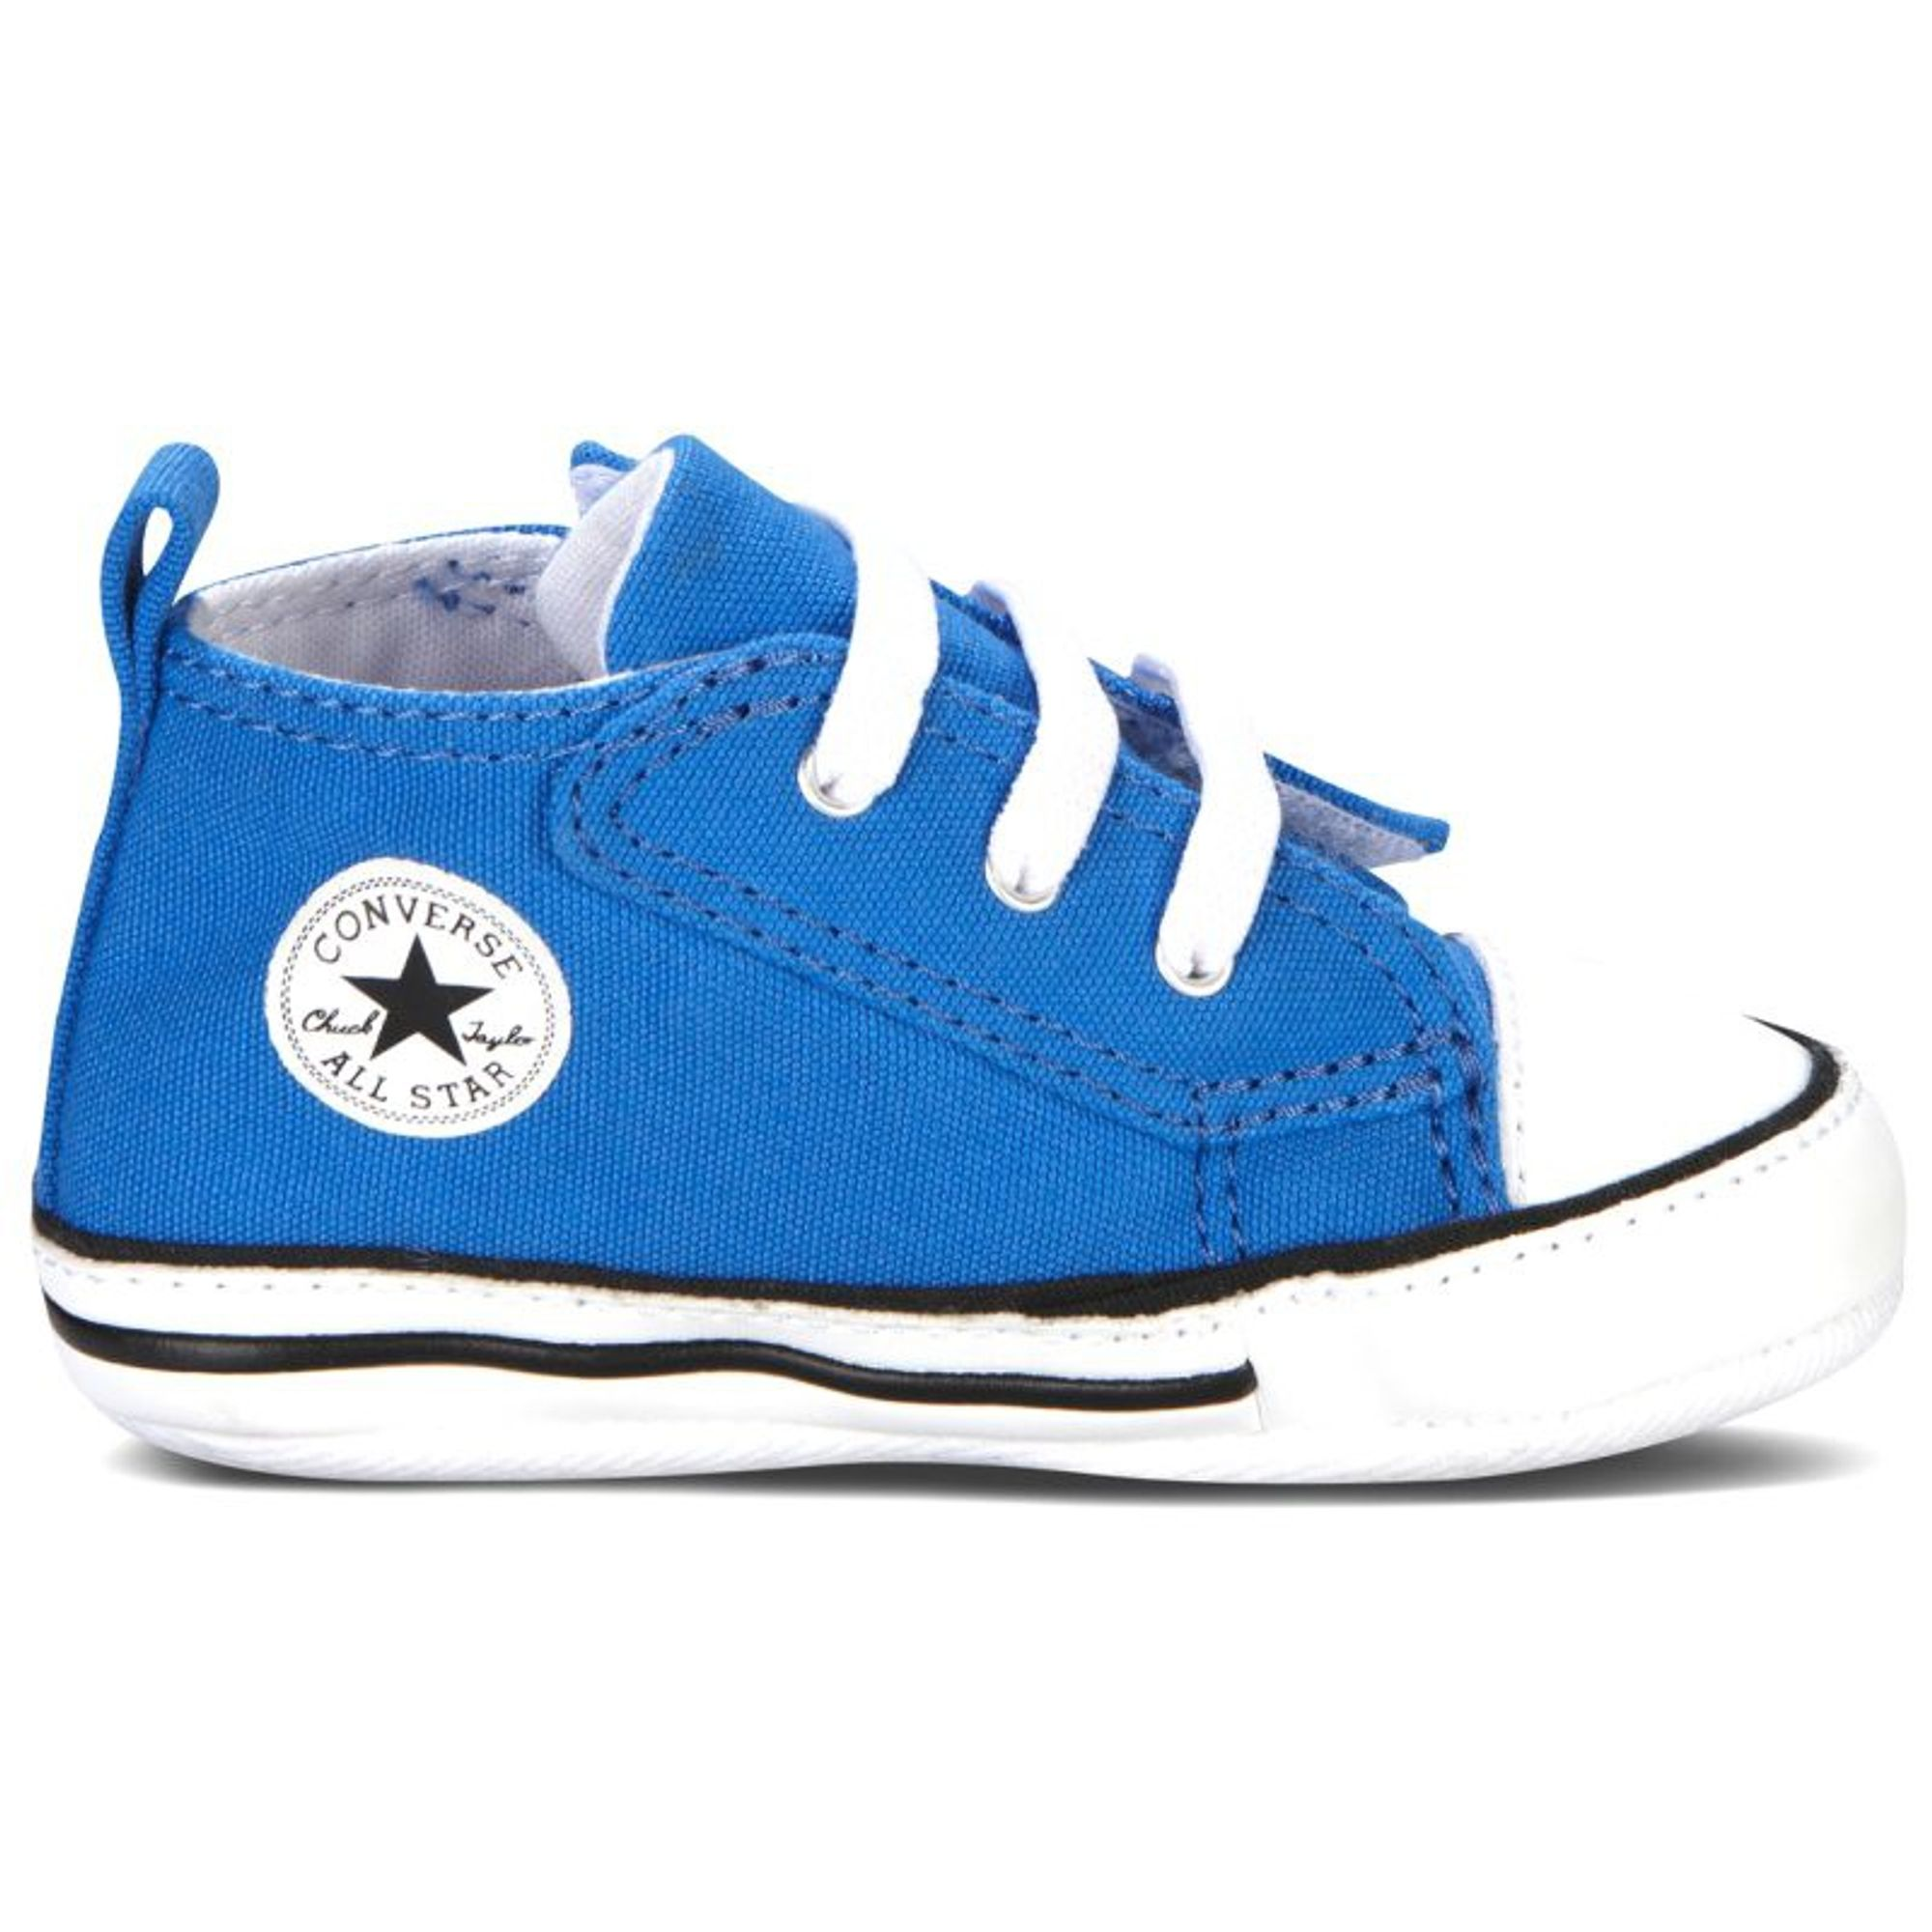 cheap for discount 5a936 14978 Converse Baby Schuhe CT Easy Slip Blau 845238C Größe 18 | starlabels  outdoor lifestyle leder